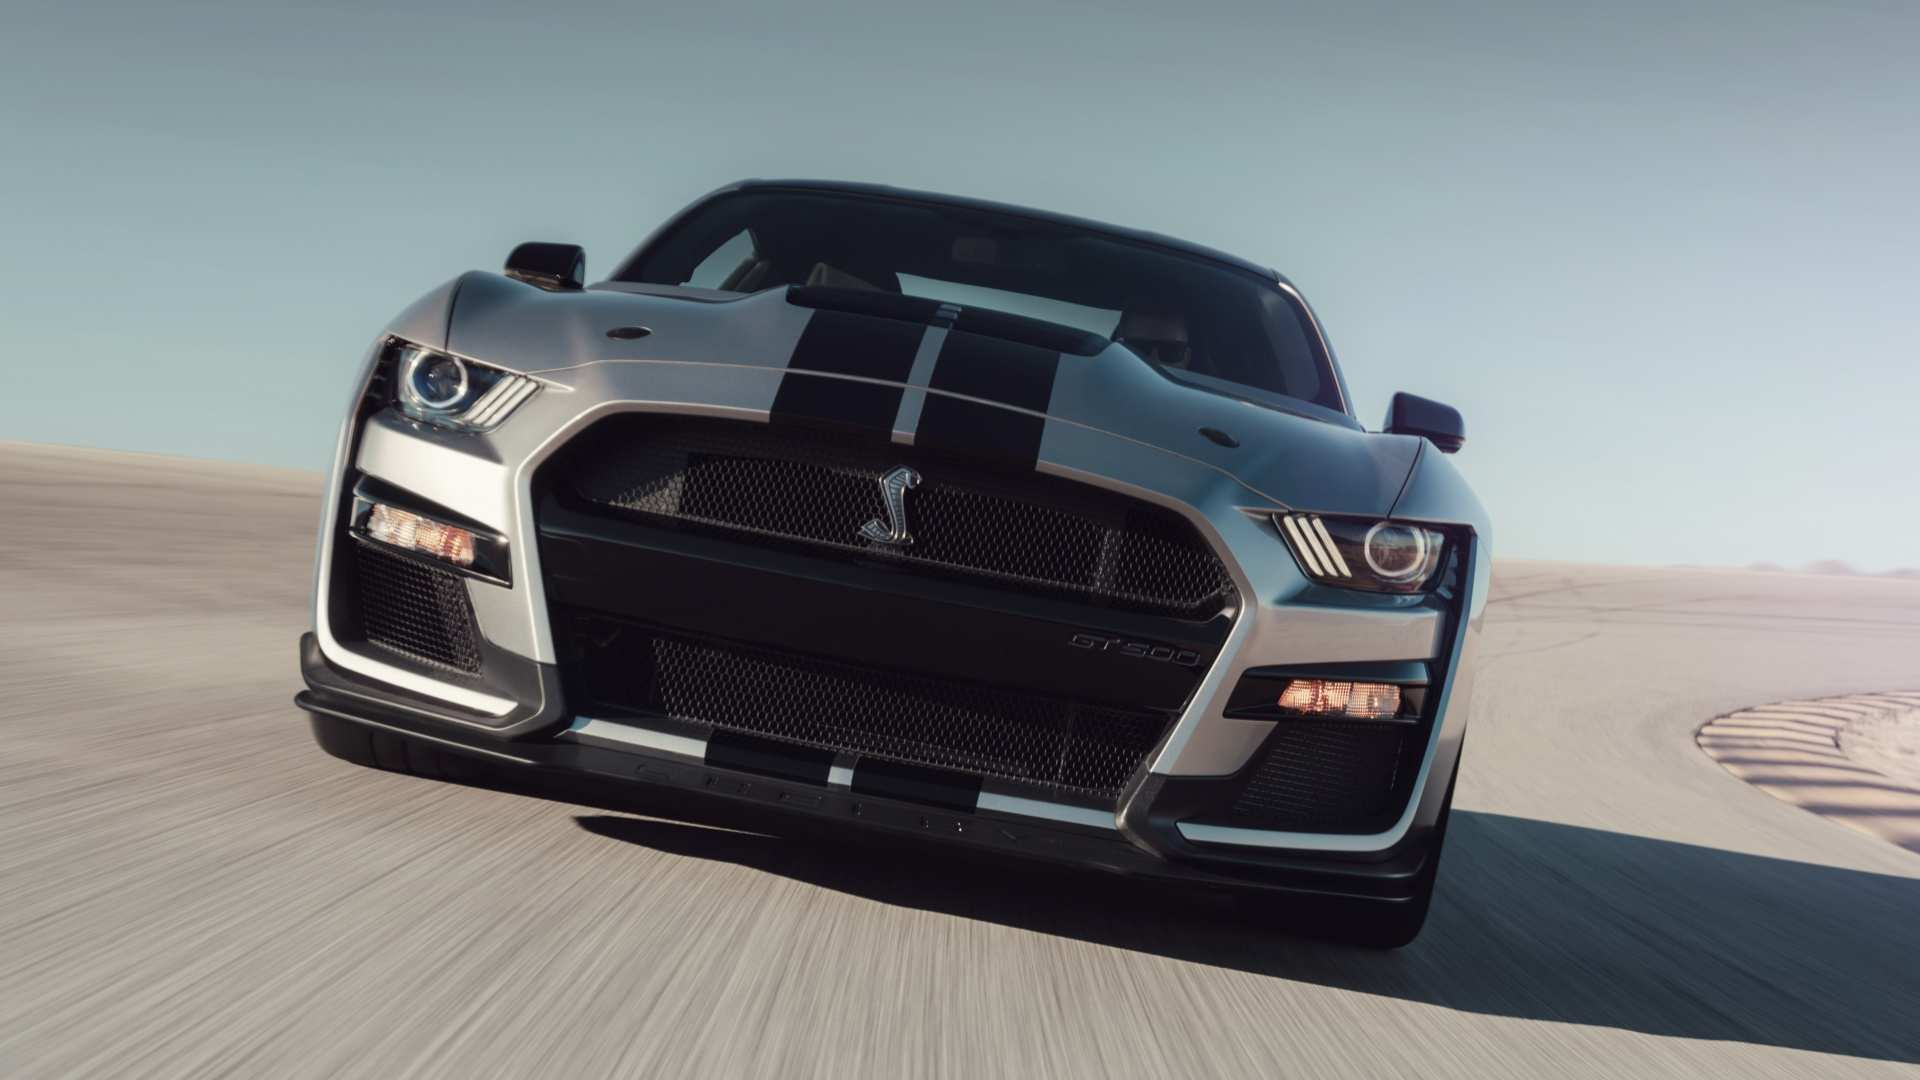 50 Great 2020 Gt500 Wallpaper Images for 2020 Gt500 Wallpaper